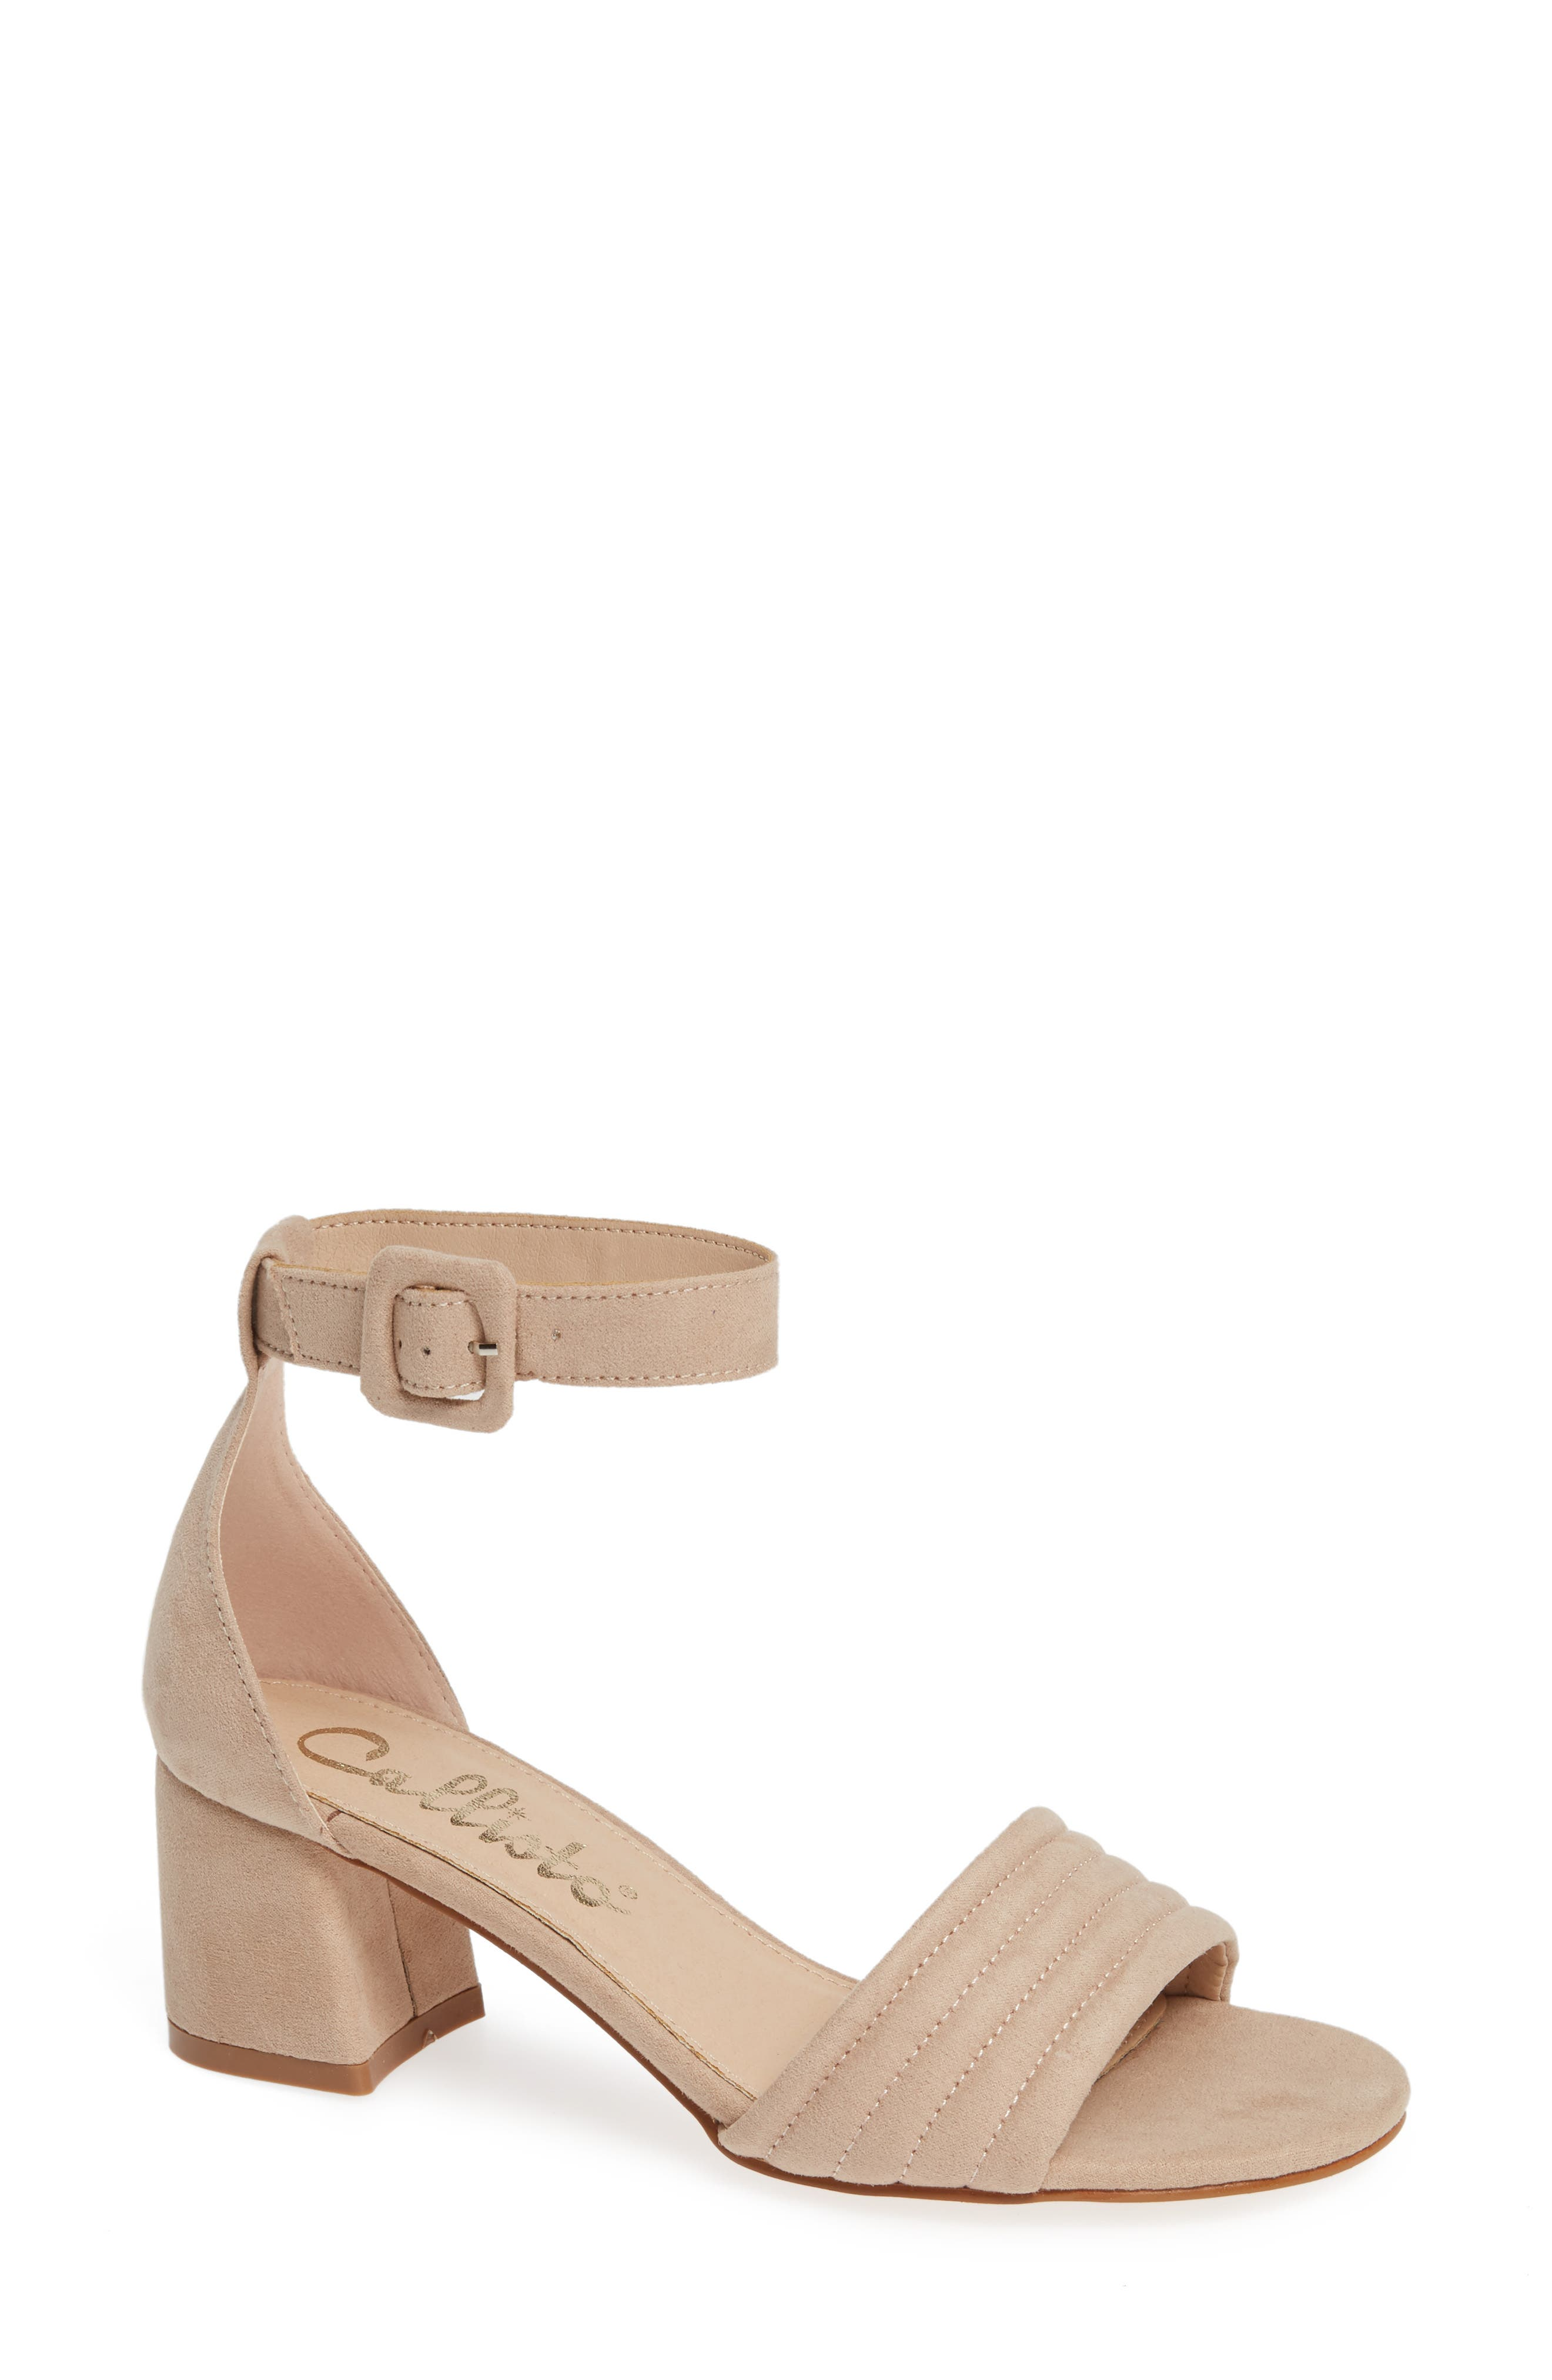 CALLISTO Puffye Ankle Strap Sandal, Main, color, BLUSH SUEDE SYNTHETIC